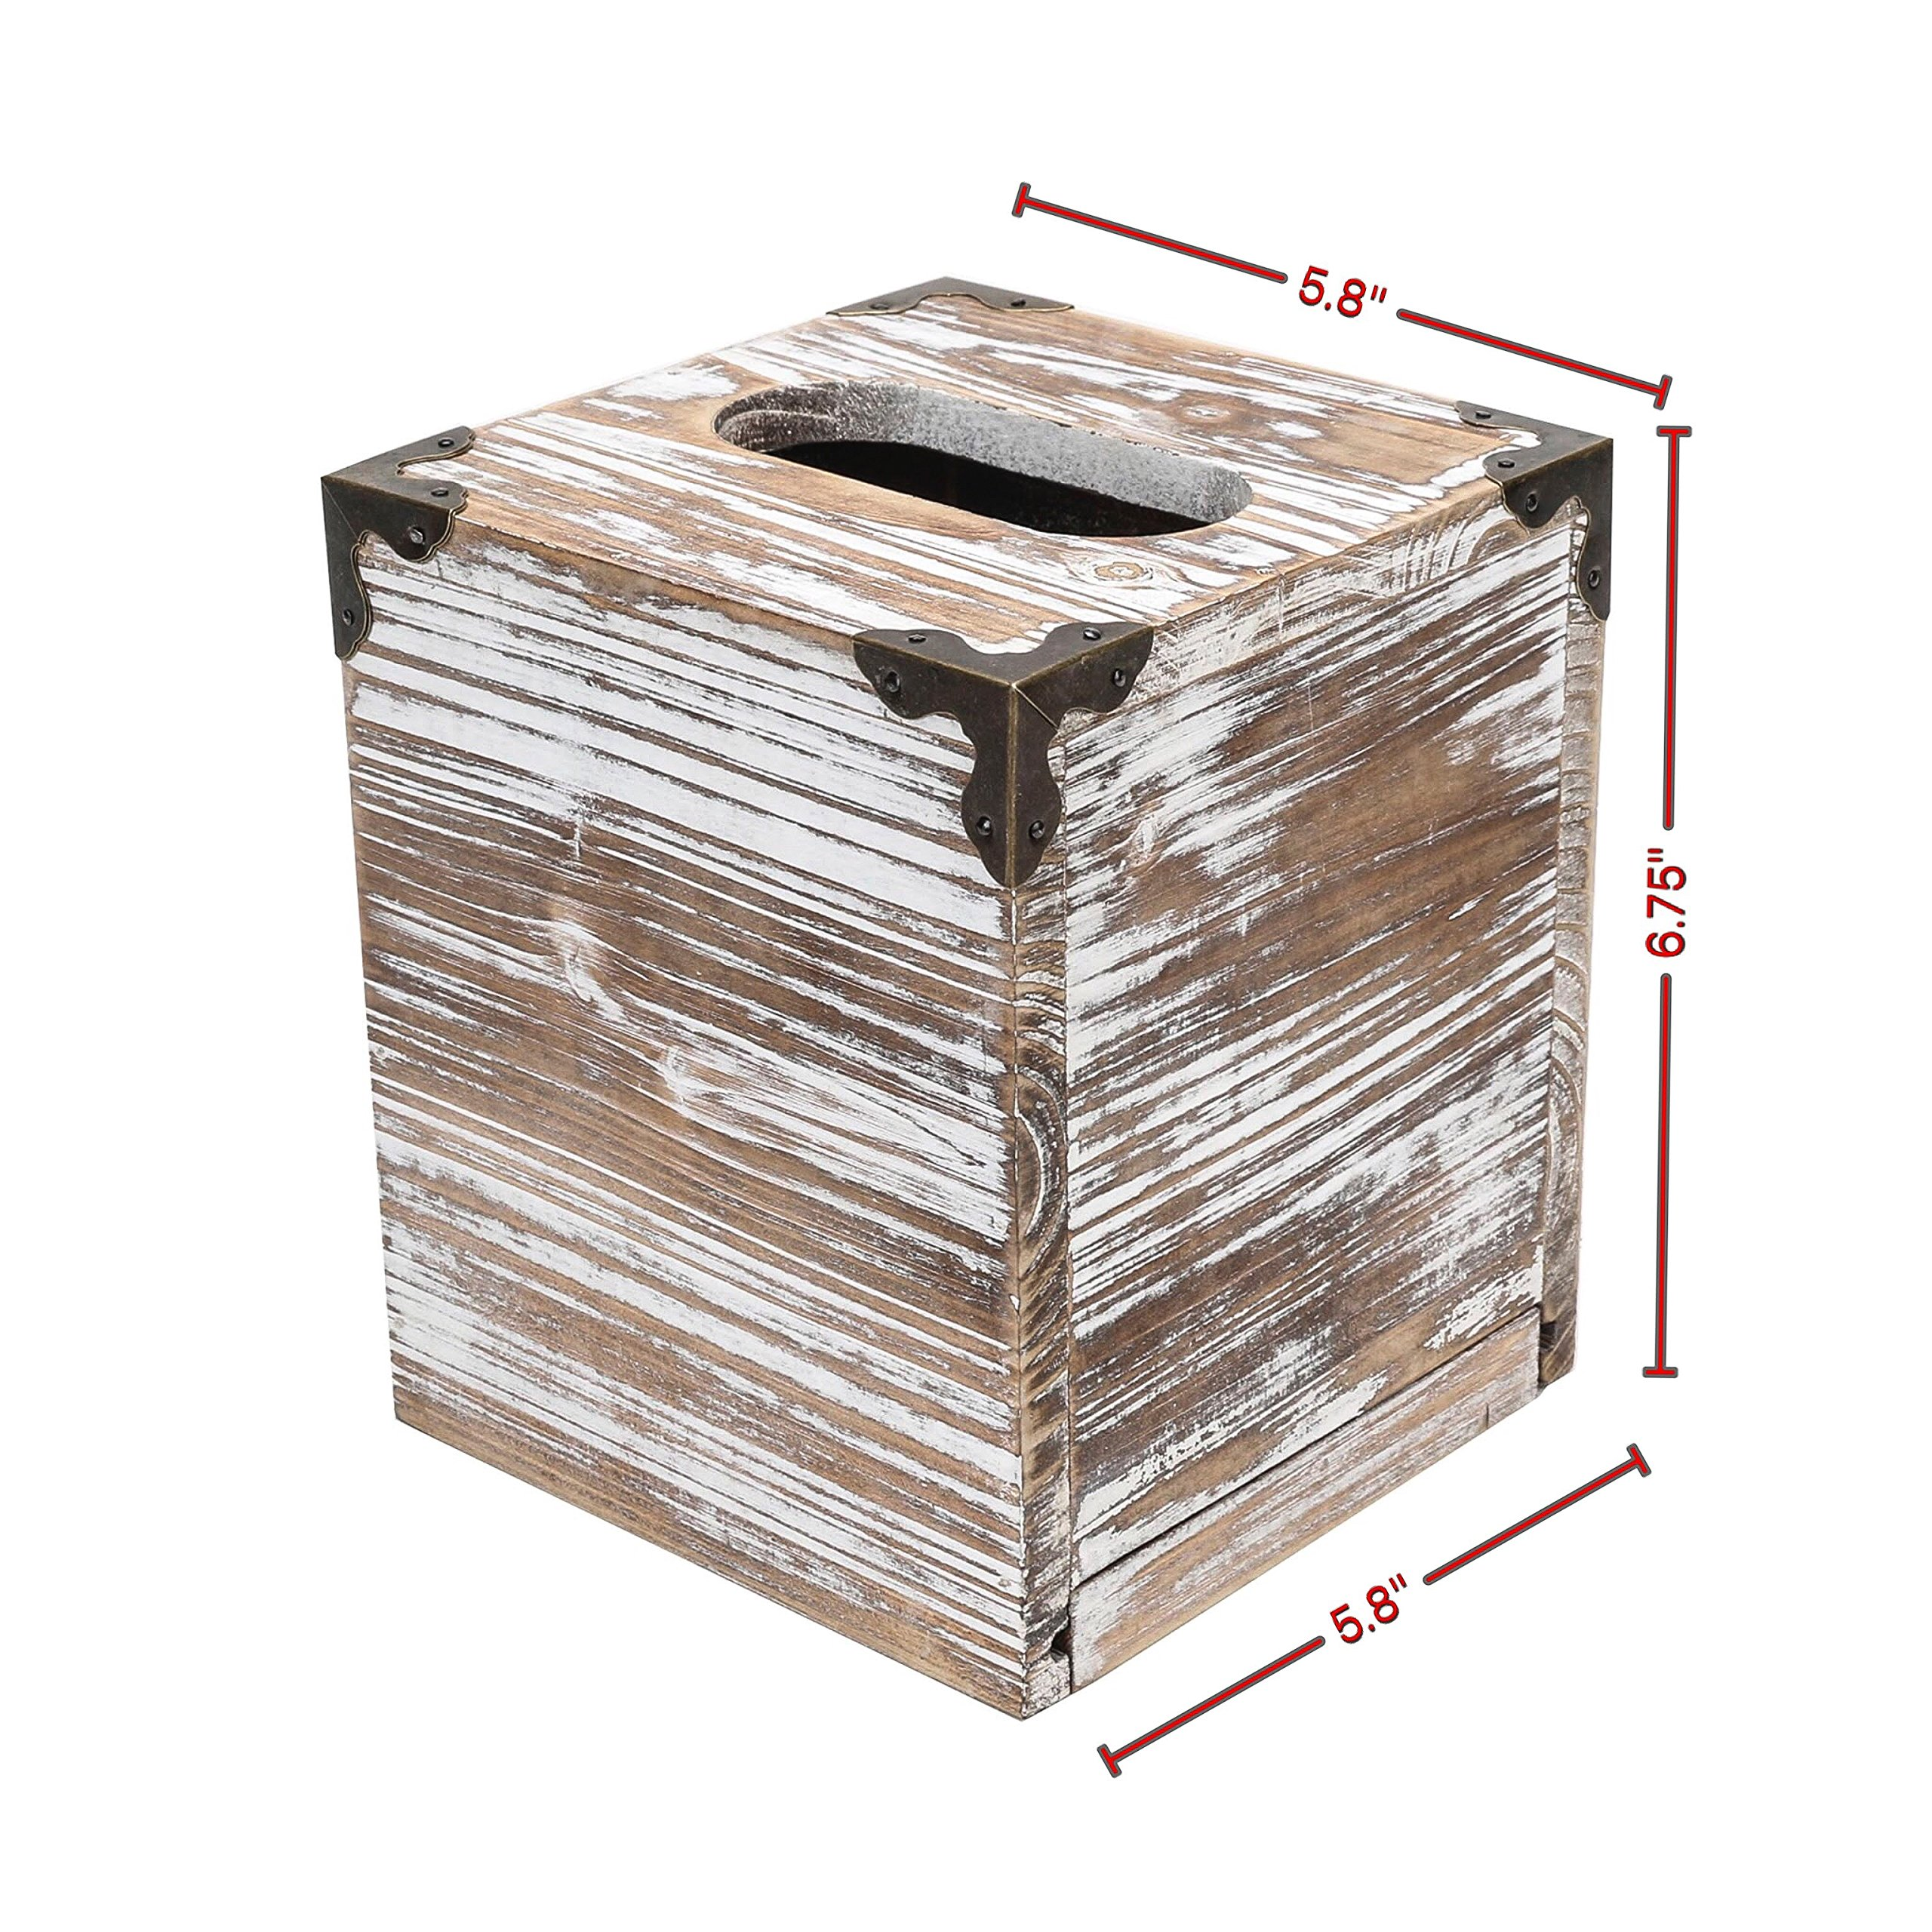 Rusoji Rustic Style Torched Wood Square Facial Tissue Box Holder Cover with Metal Accents, Brown by Rusoji (Image #7)